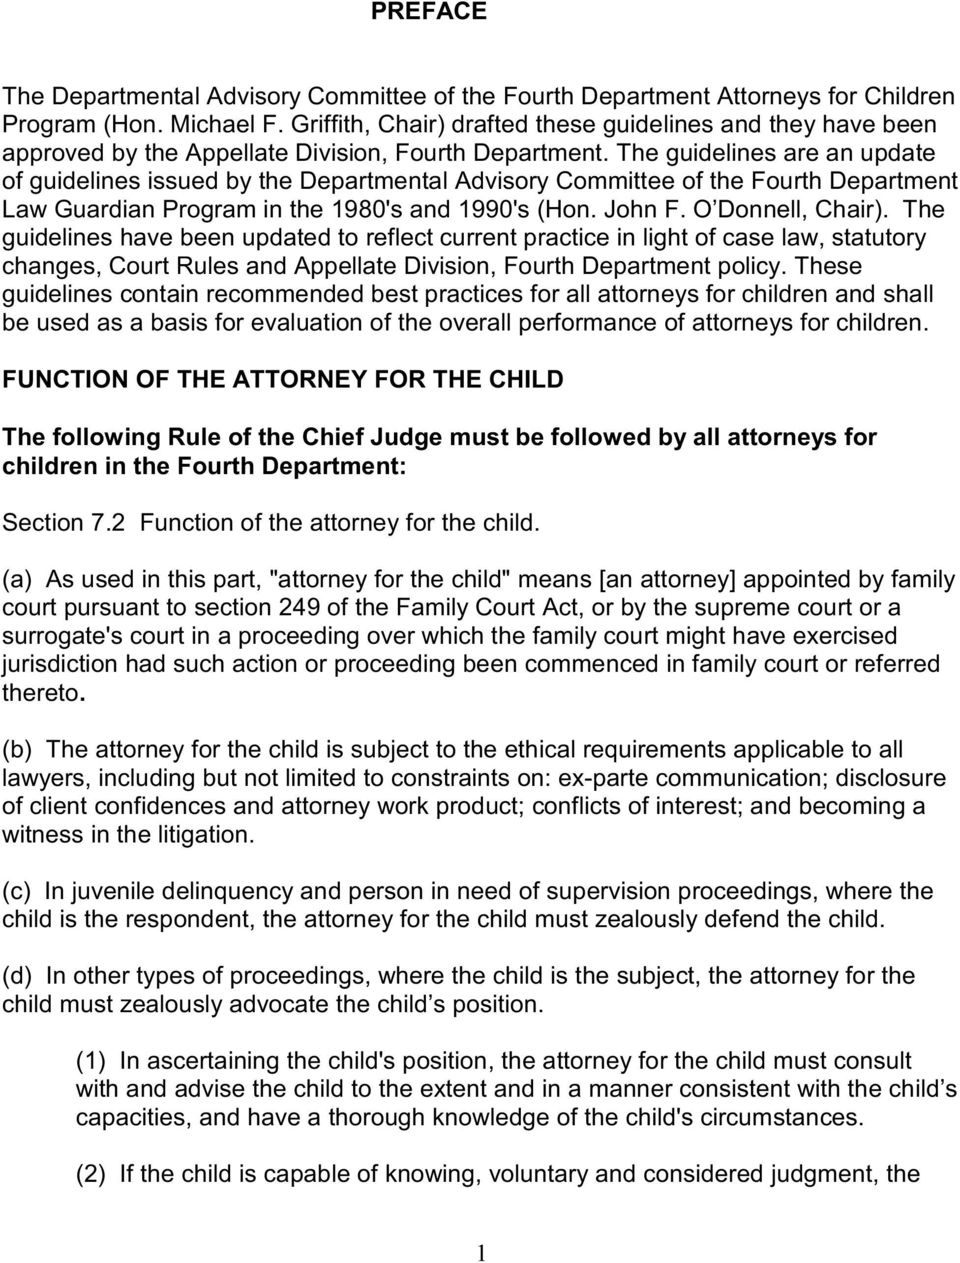 The guidelines are an update of guidelines issued by the Departmental Advisory Committee of the Fourth Department Law Guardian Program in the 1980's and 1990's (Hon. John F. O Donnell, Chair).